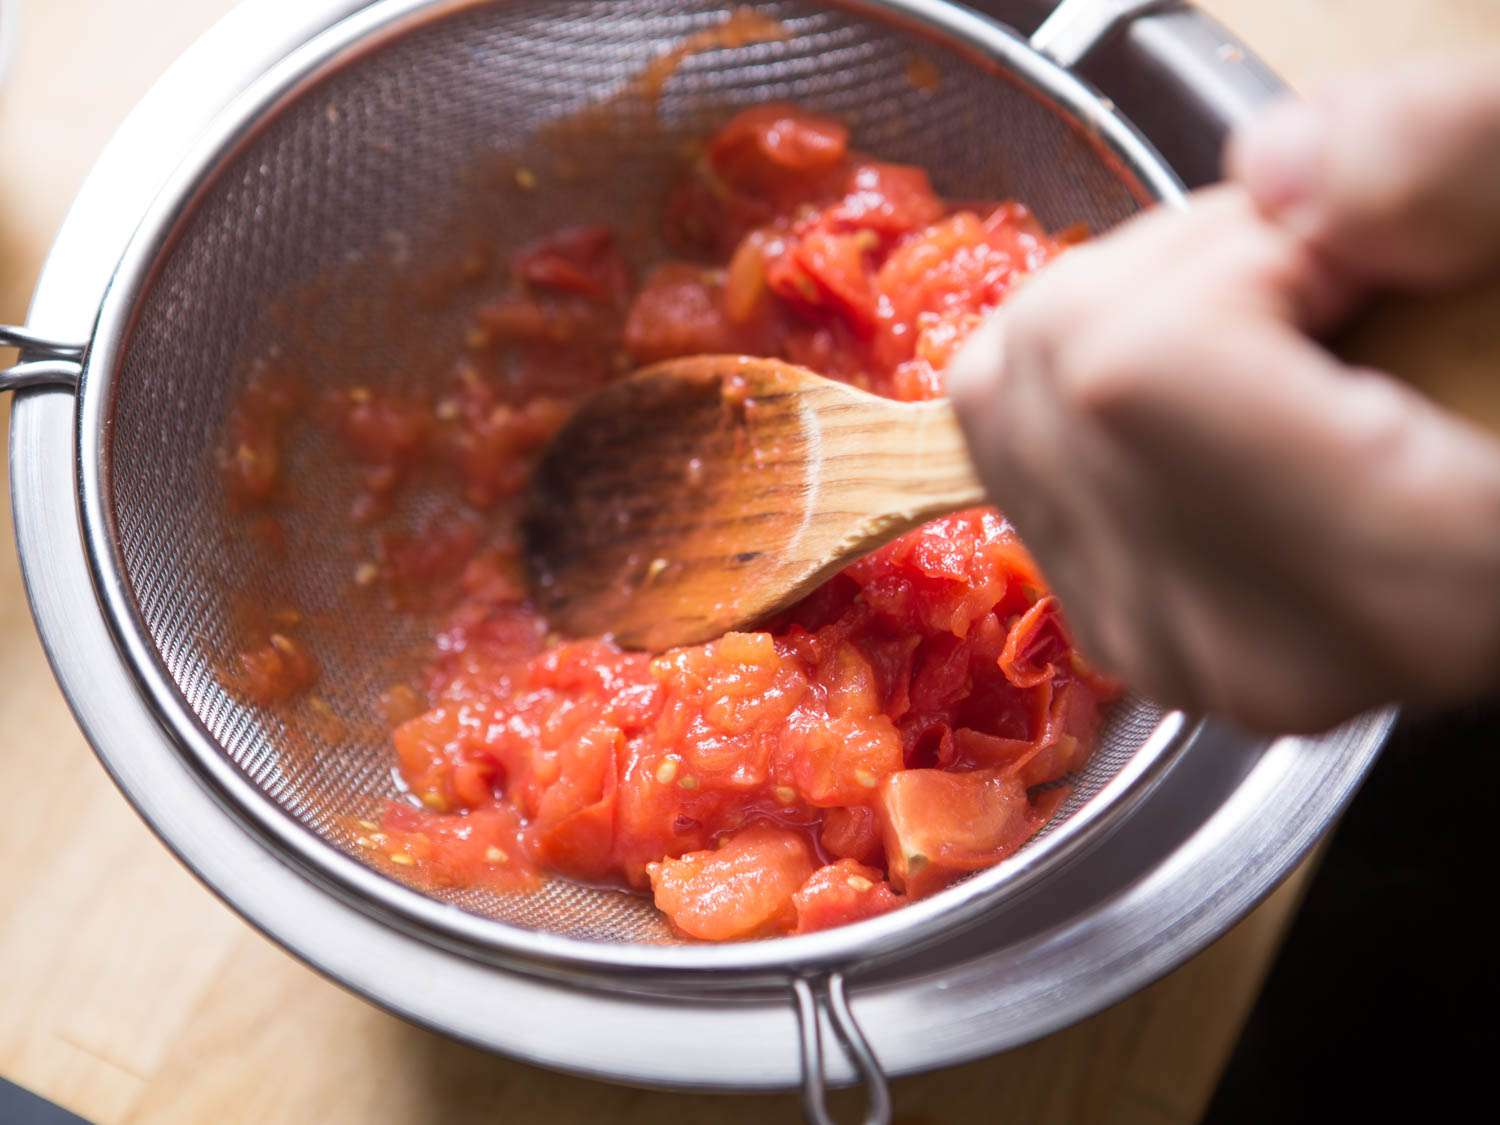 Pressing tomatoes through a fine-mesh strainer using a wooden spoon